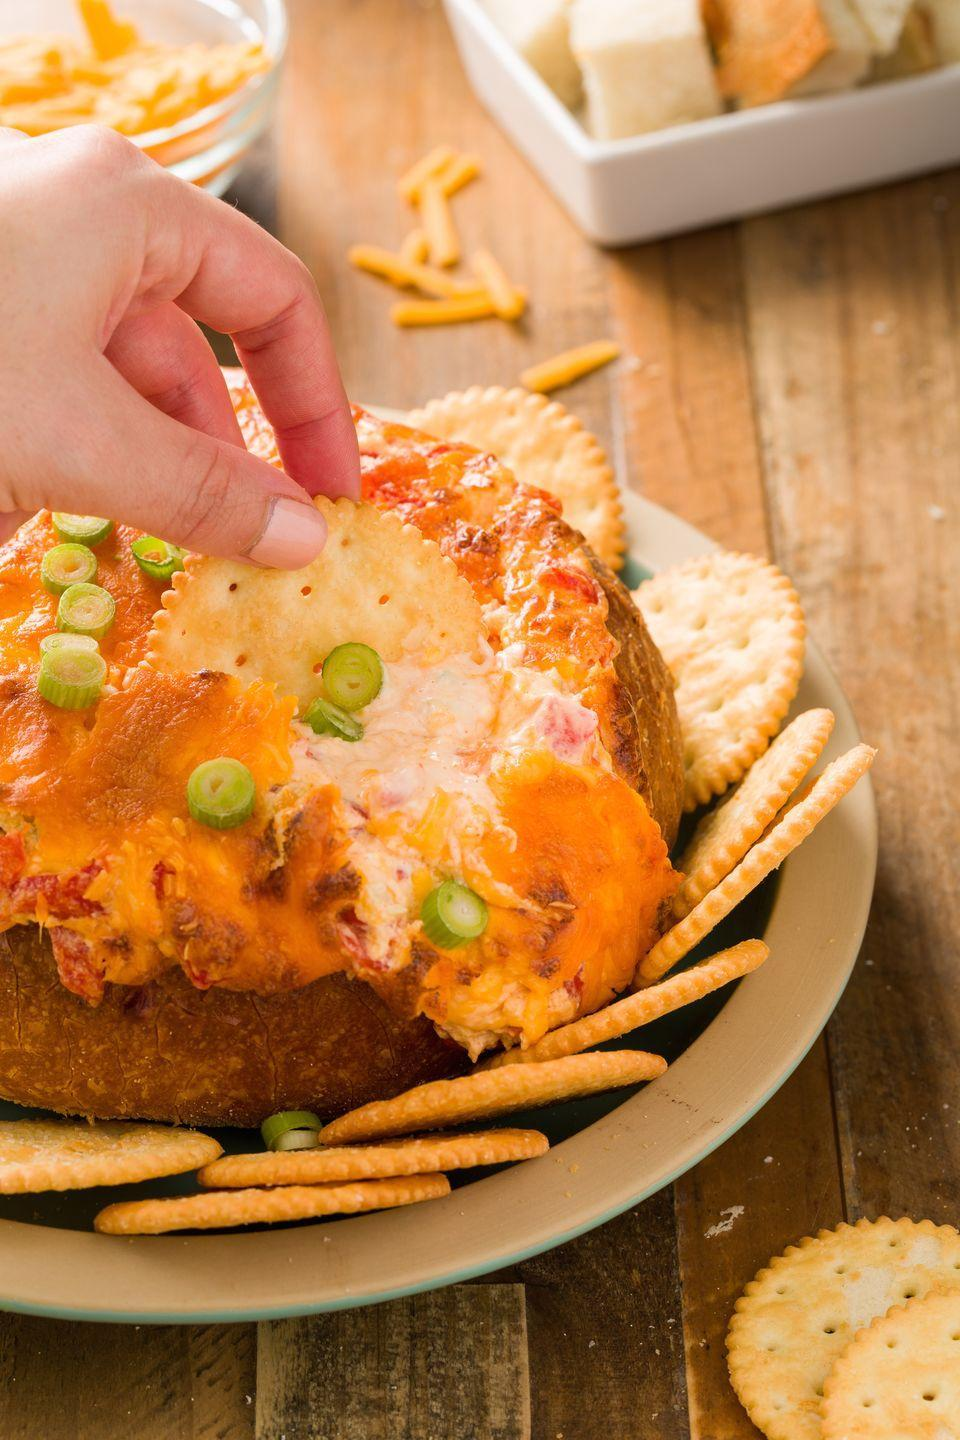 "<p>Fact: Loaded with Southern favorite pimiento cheese, this simple crowd-pleaser will always be the hit of a party spread.</p><p>Get the recipe from <a href=""/cooking/recipe-ideas/recipes/a44541/baked-pimiento-cheese-dip-in-a-bread-bowl-recipe/"" data-ylk=""slk:Delish"" class=""link rapid-noclick-resp"">Delish</a>.</p>"